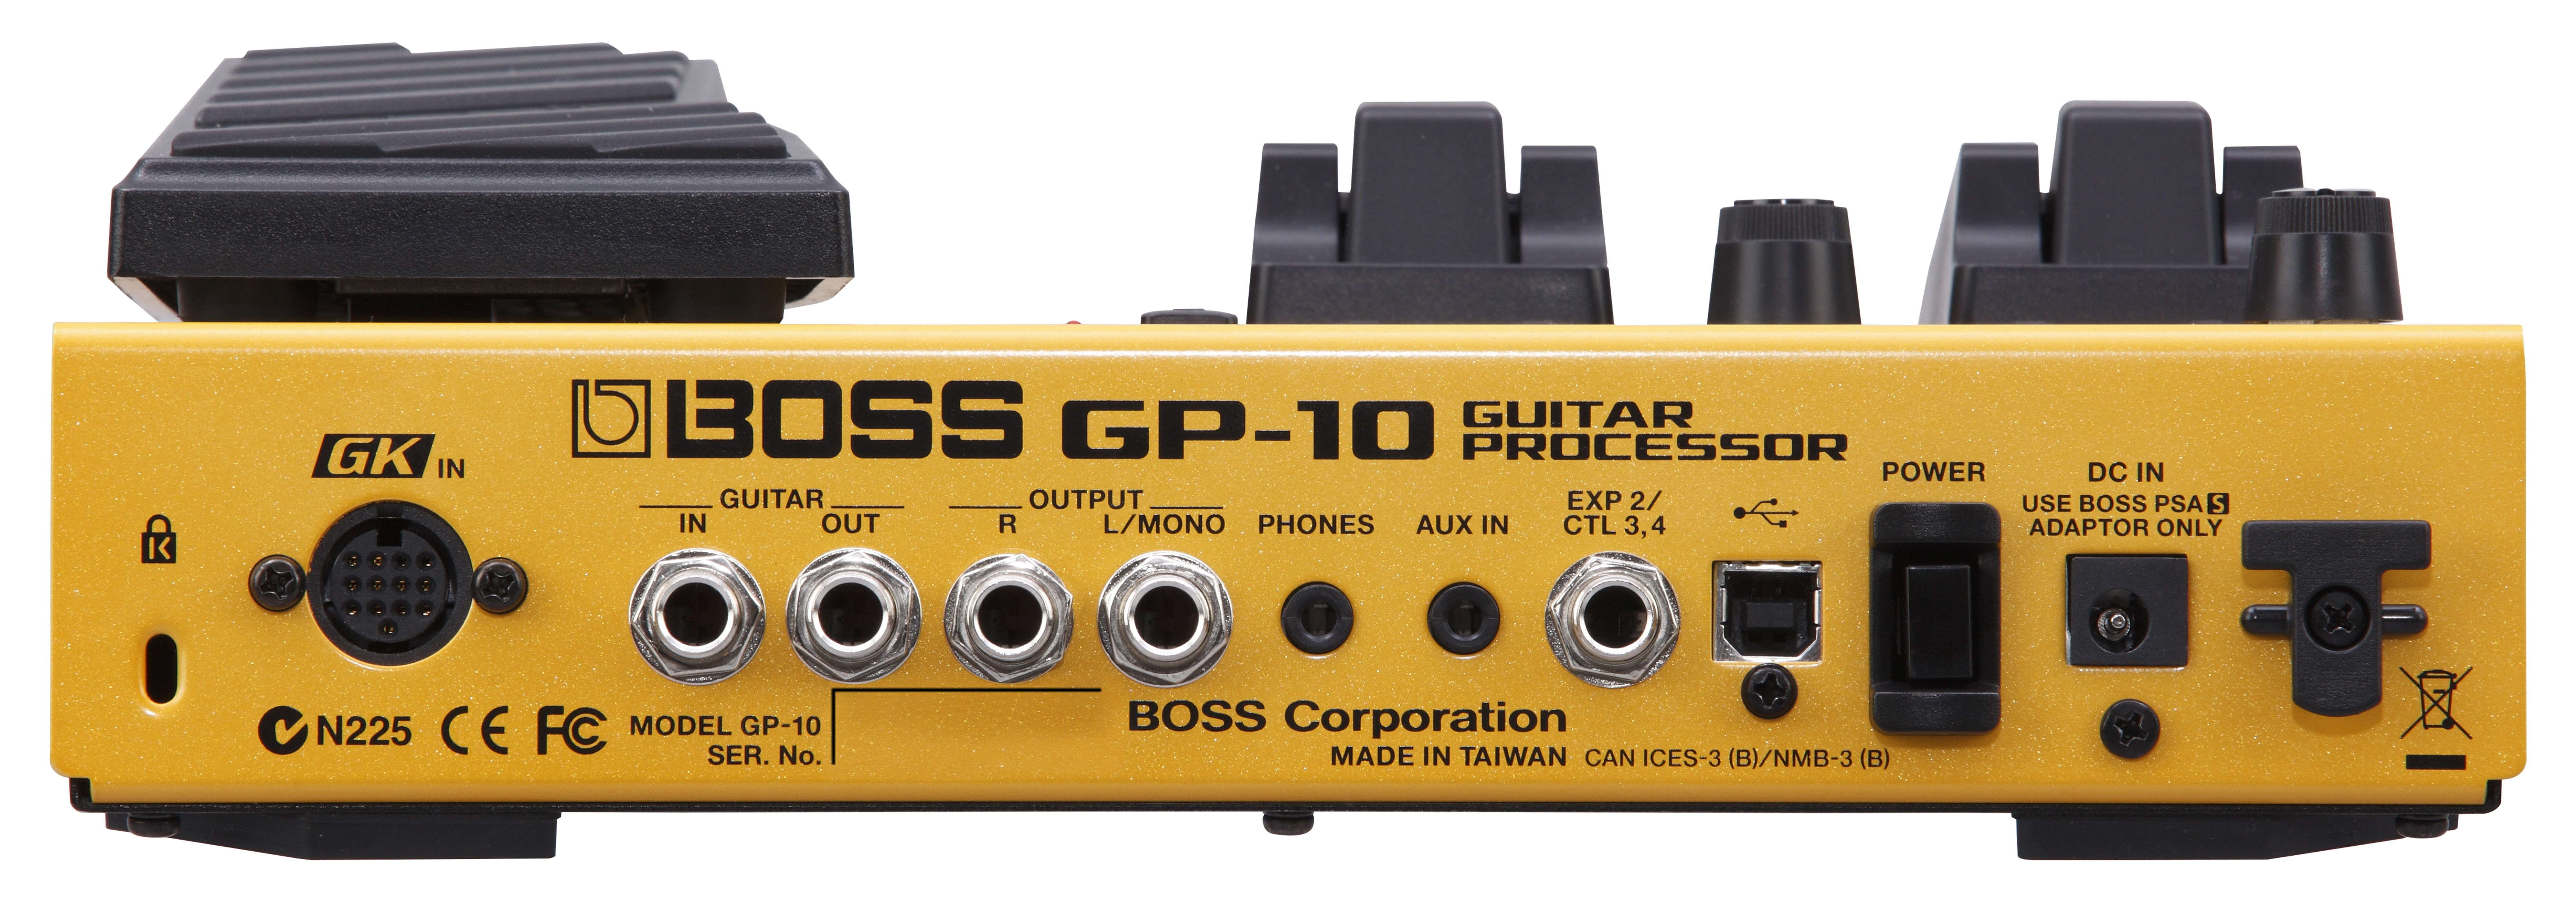 Boss GP 10 Guitar Processor With a Roland GK patible pickup on your